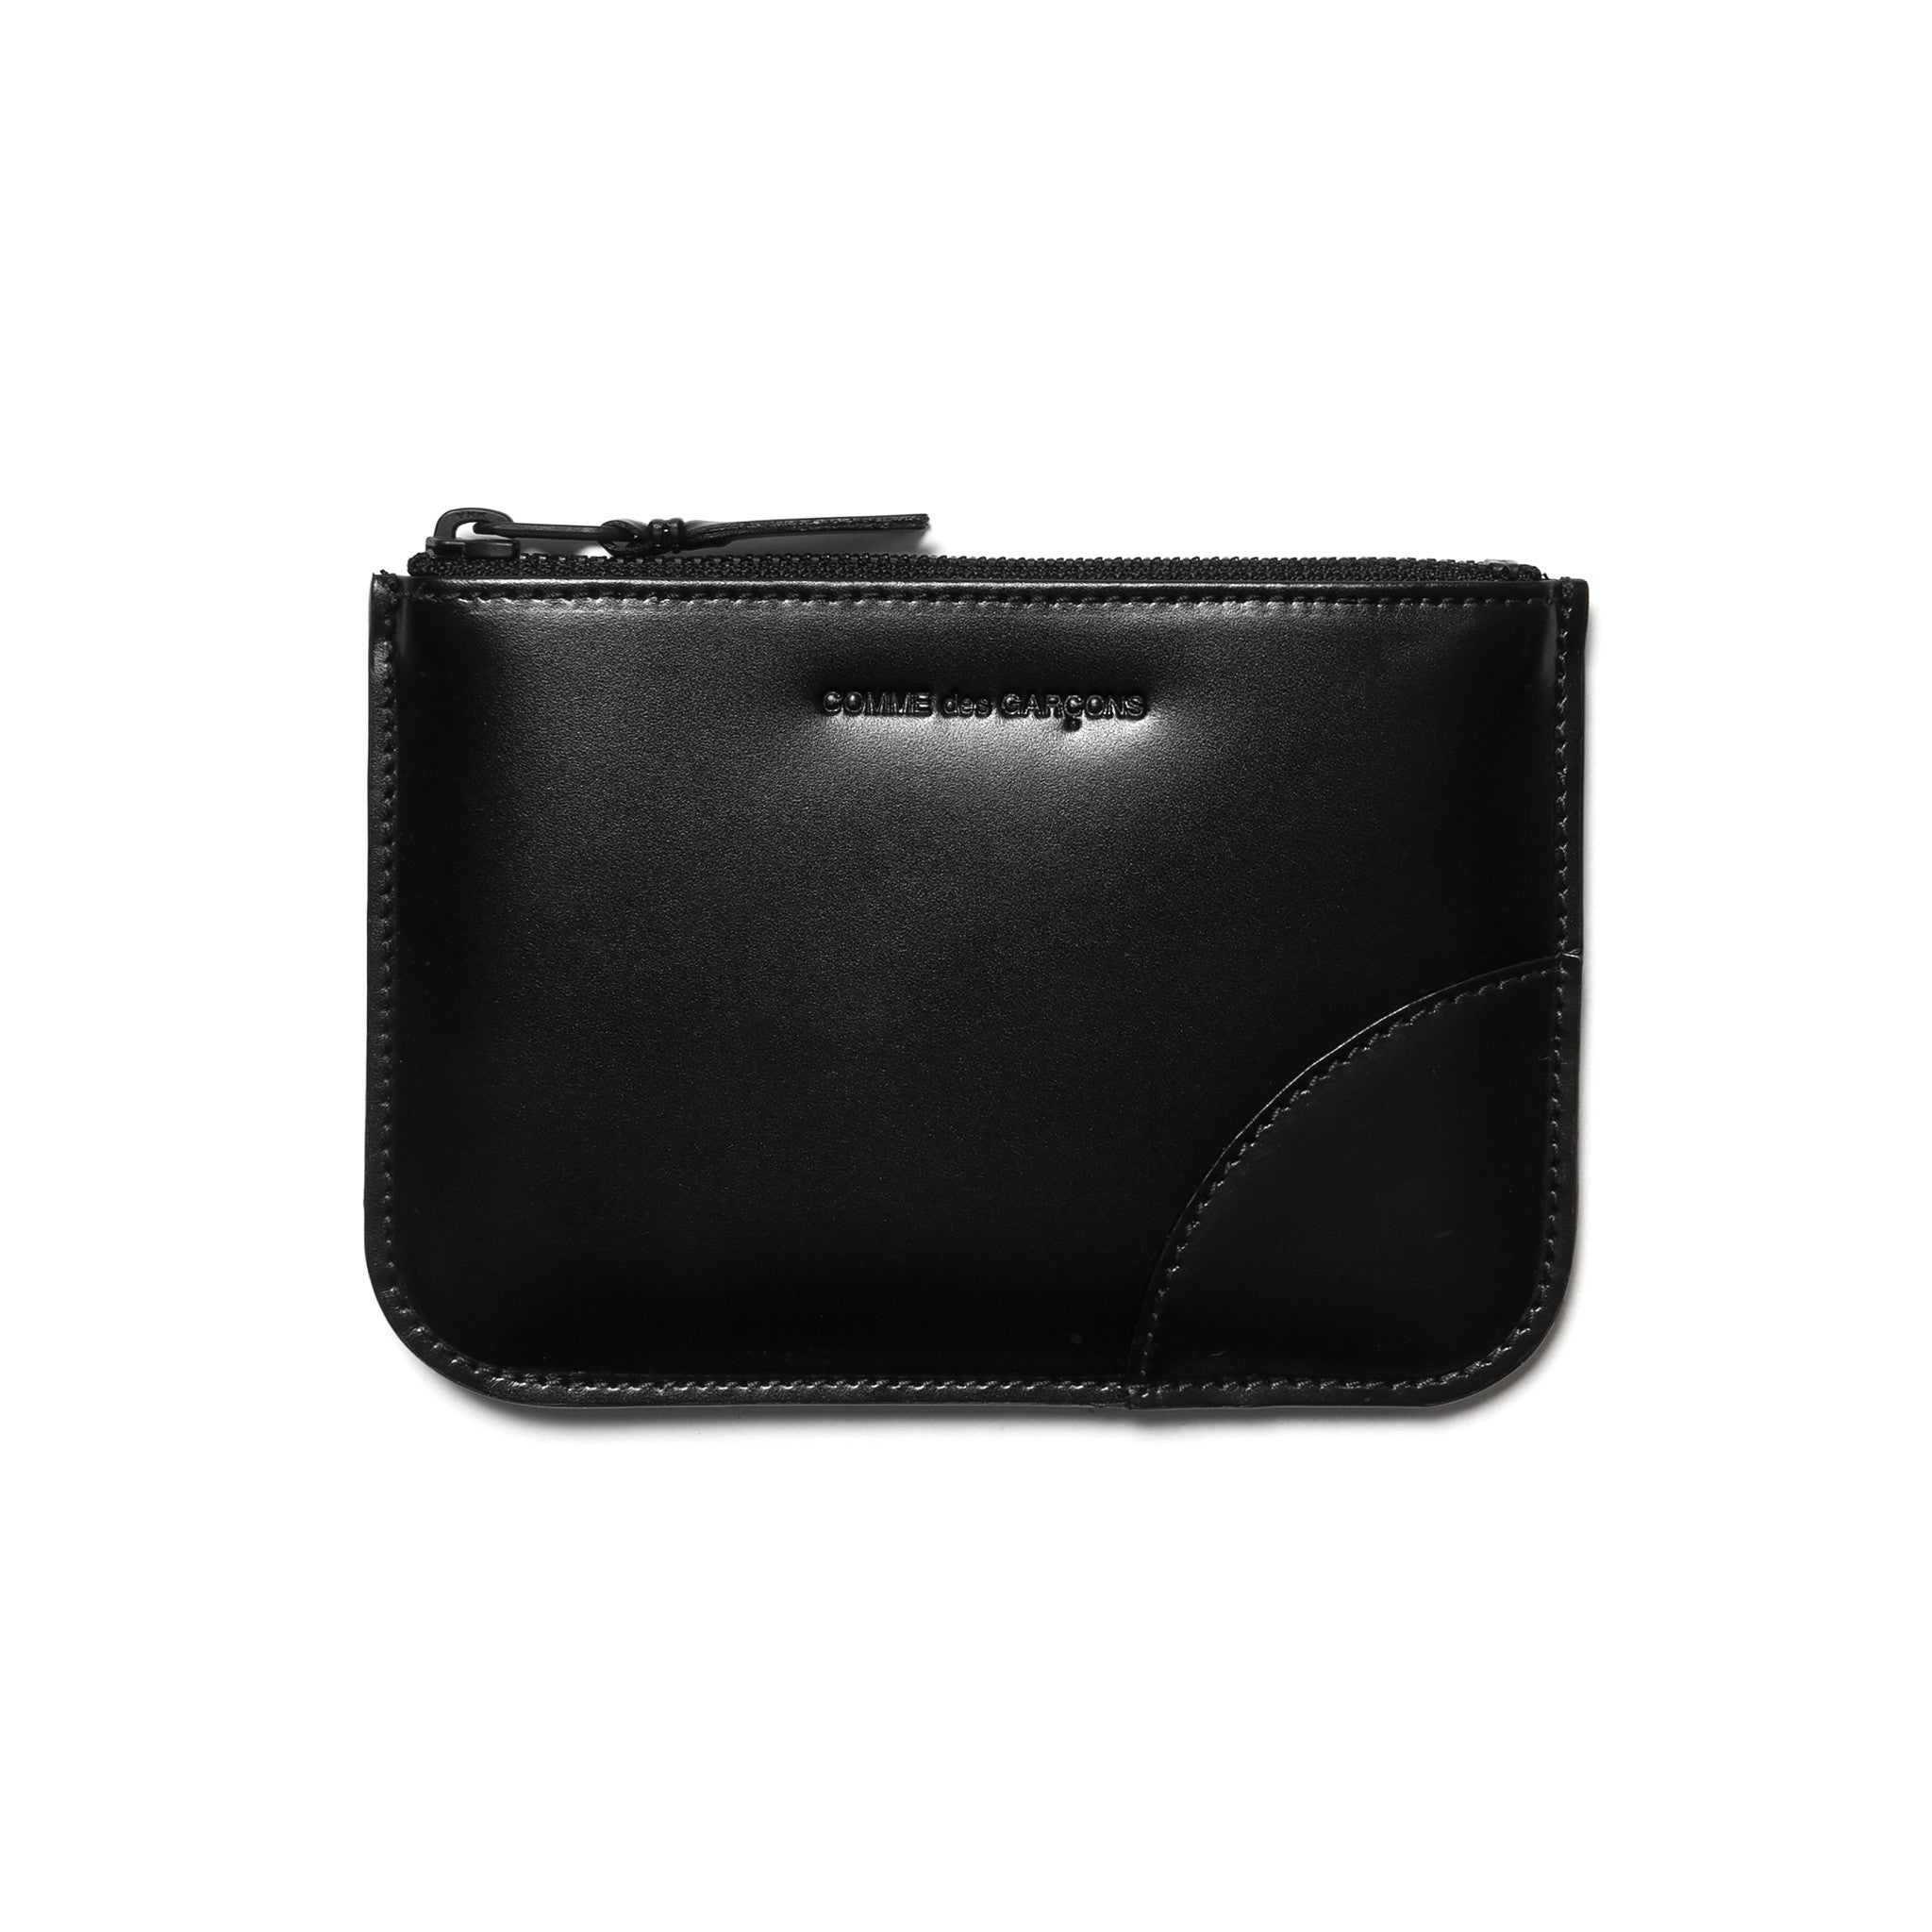 Small Leather Goods - Wallets Comme Des Gar?ons